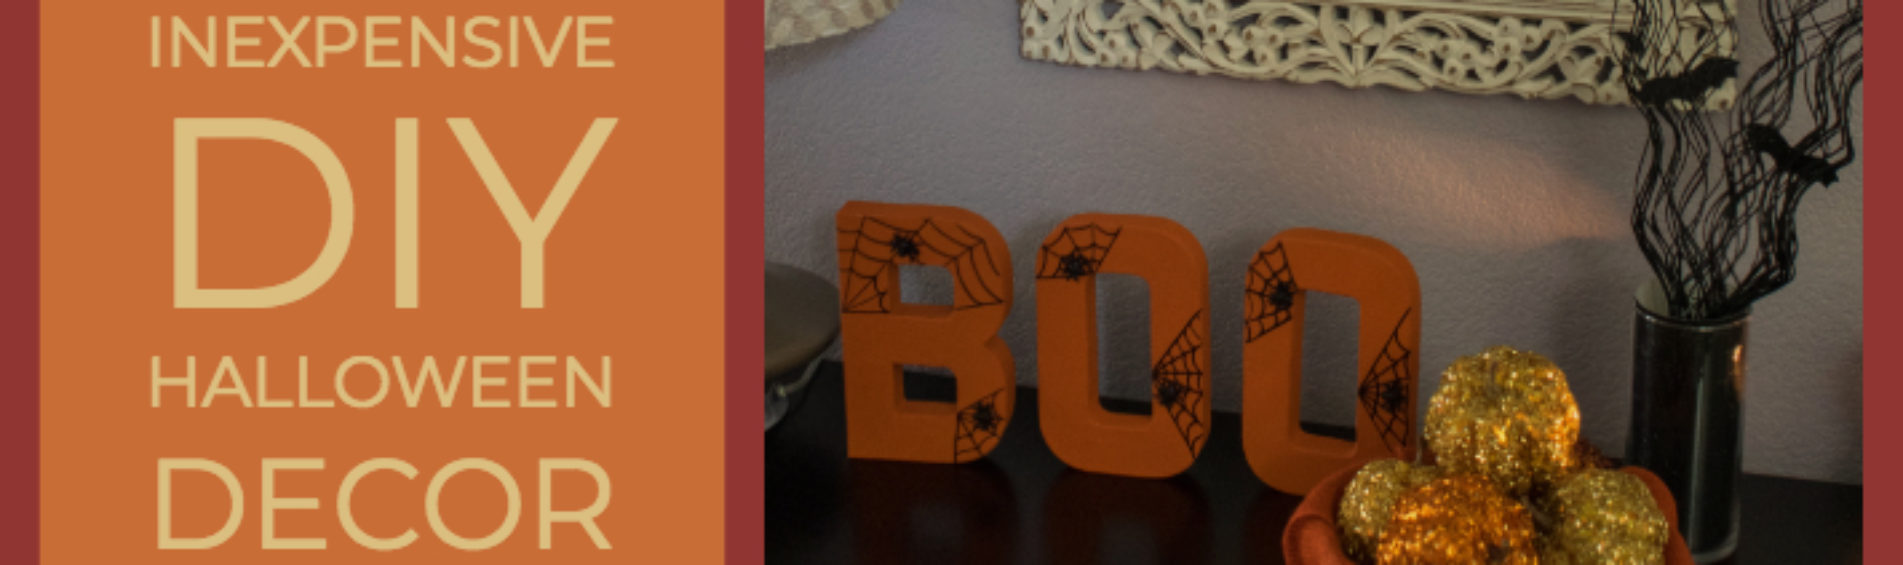 Inexpensive DIY Halloween Decorations